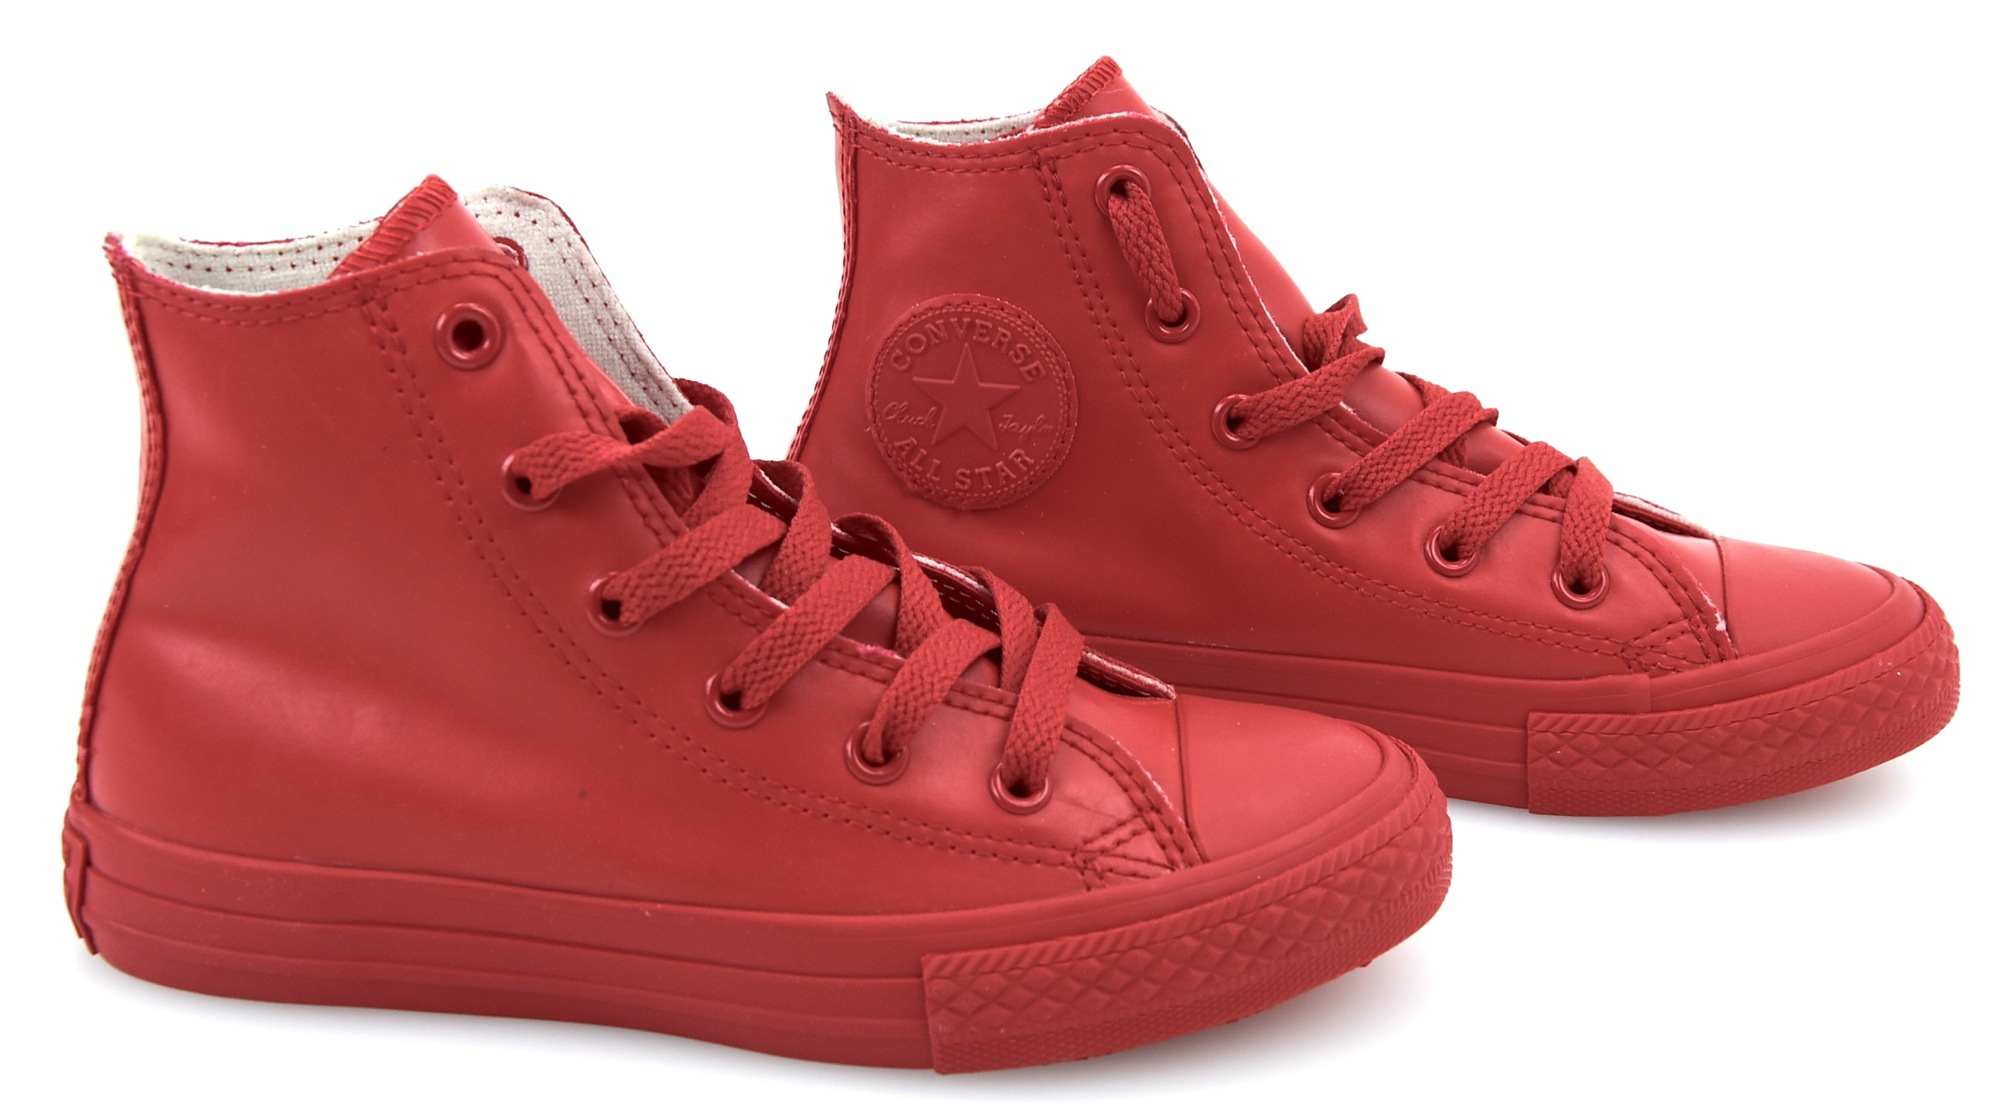 e1ea63e2e130 Details about CONVERSE ALL STAR JUNIOR GIRL SNEAKER SHOES CASUAL FREE TIME  CODE 344744C